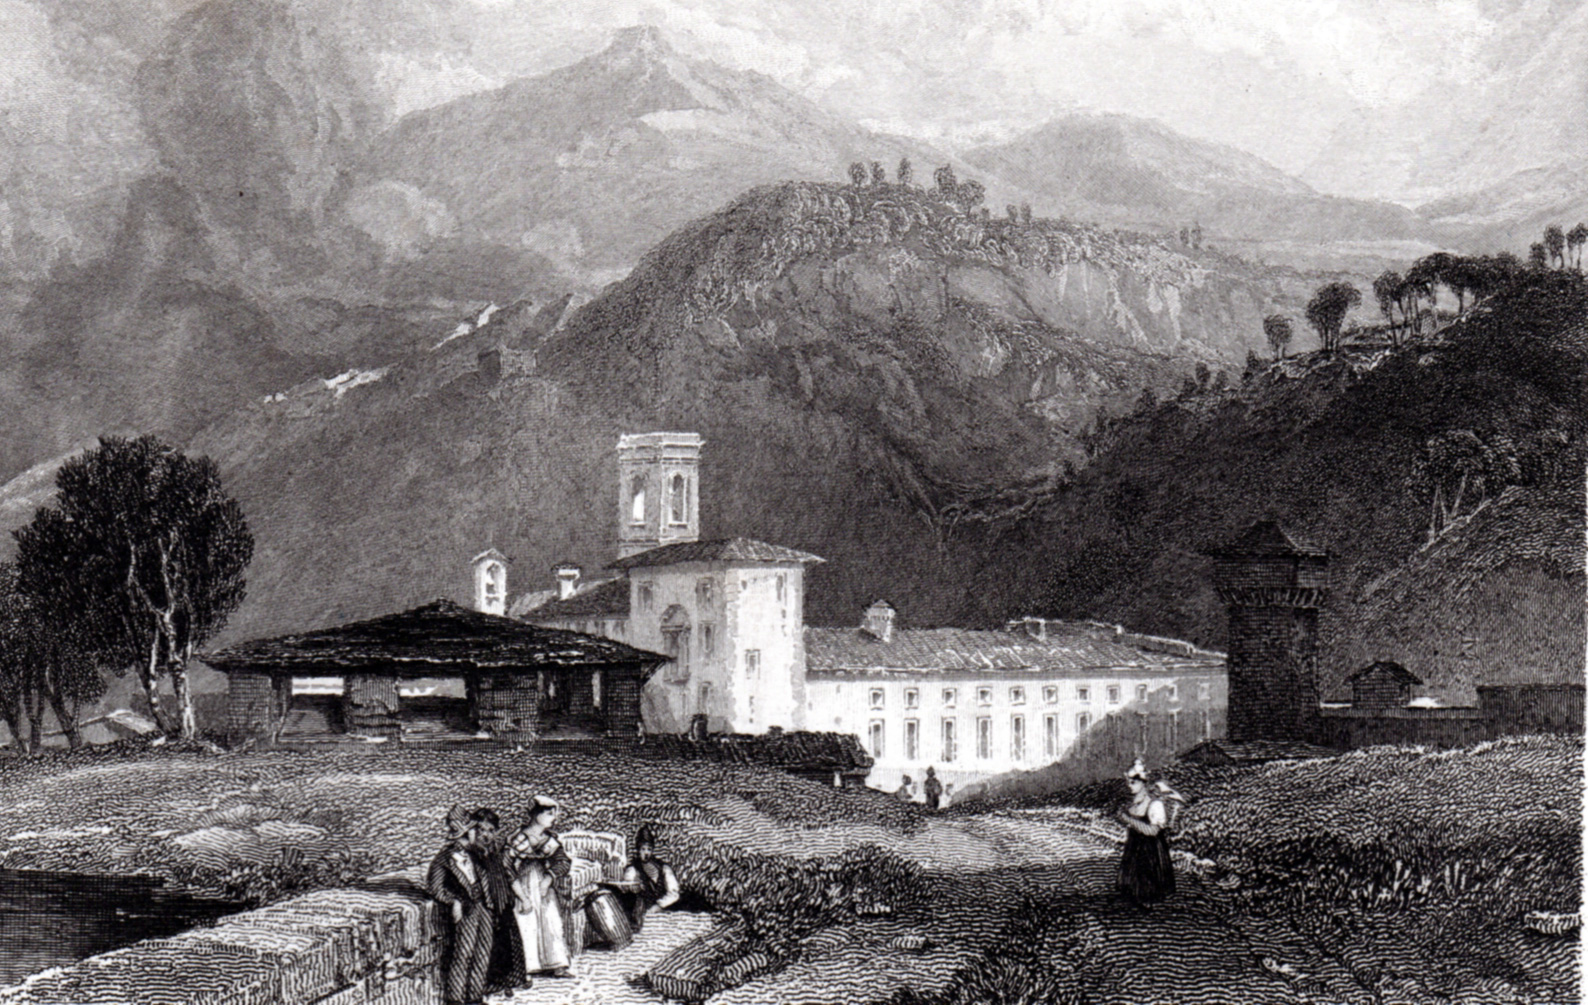 Miscellaneous antique prints of Italy